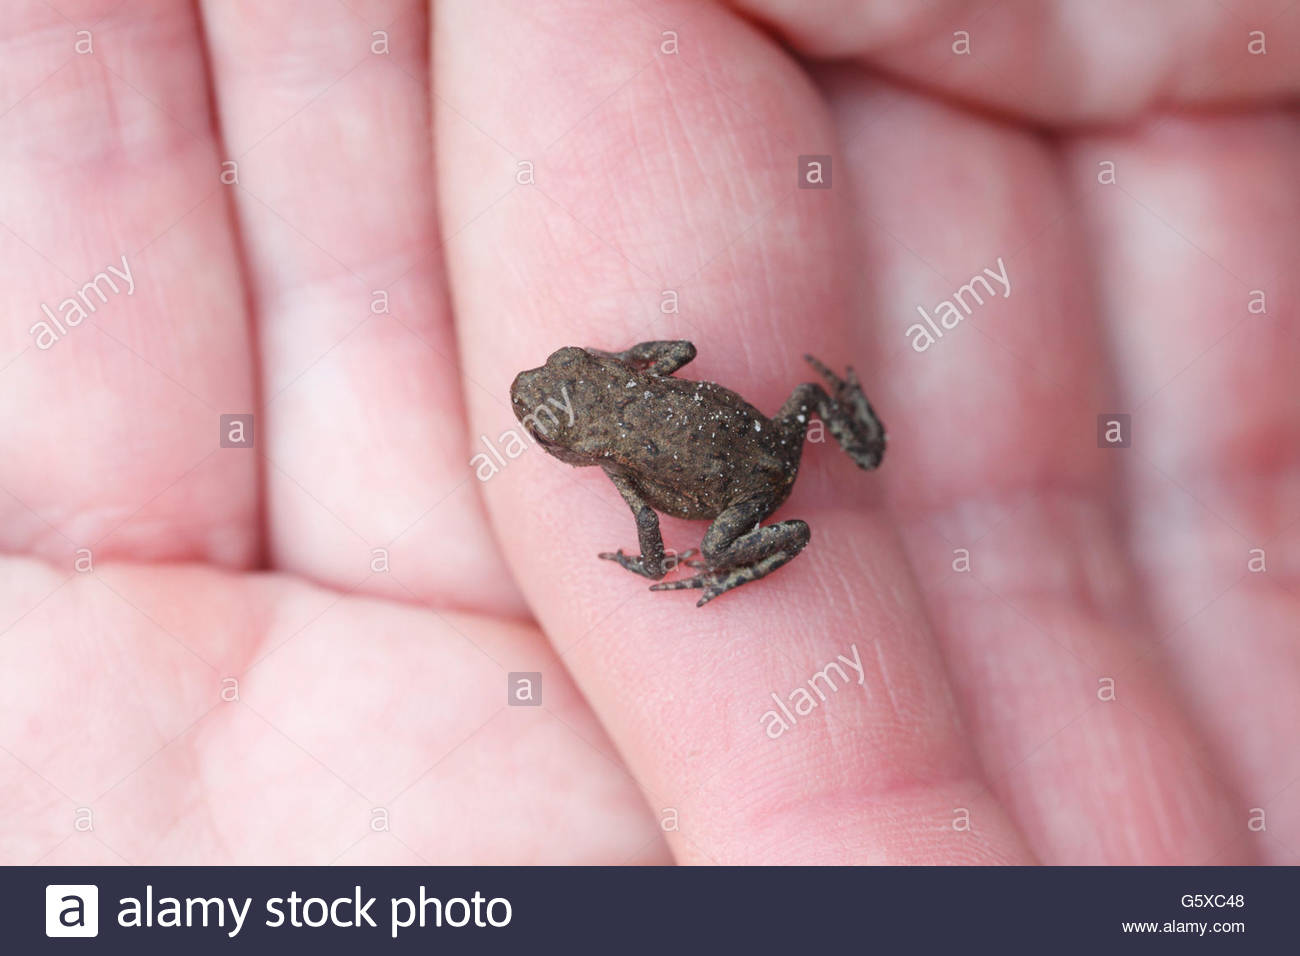 Young frog sitting on female hands - Stock Image